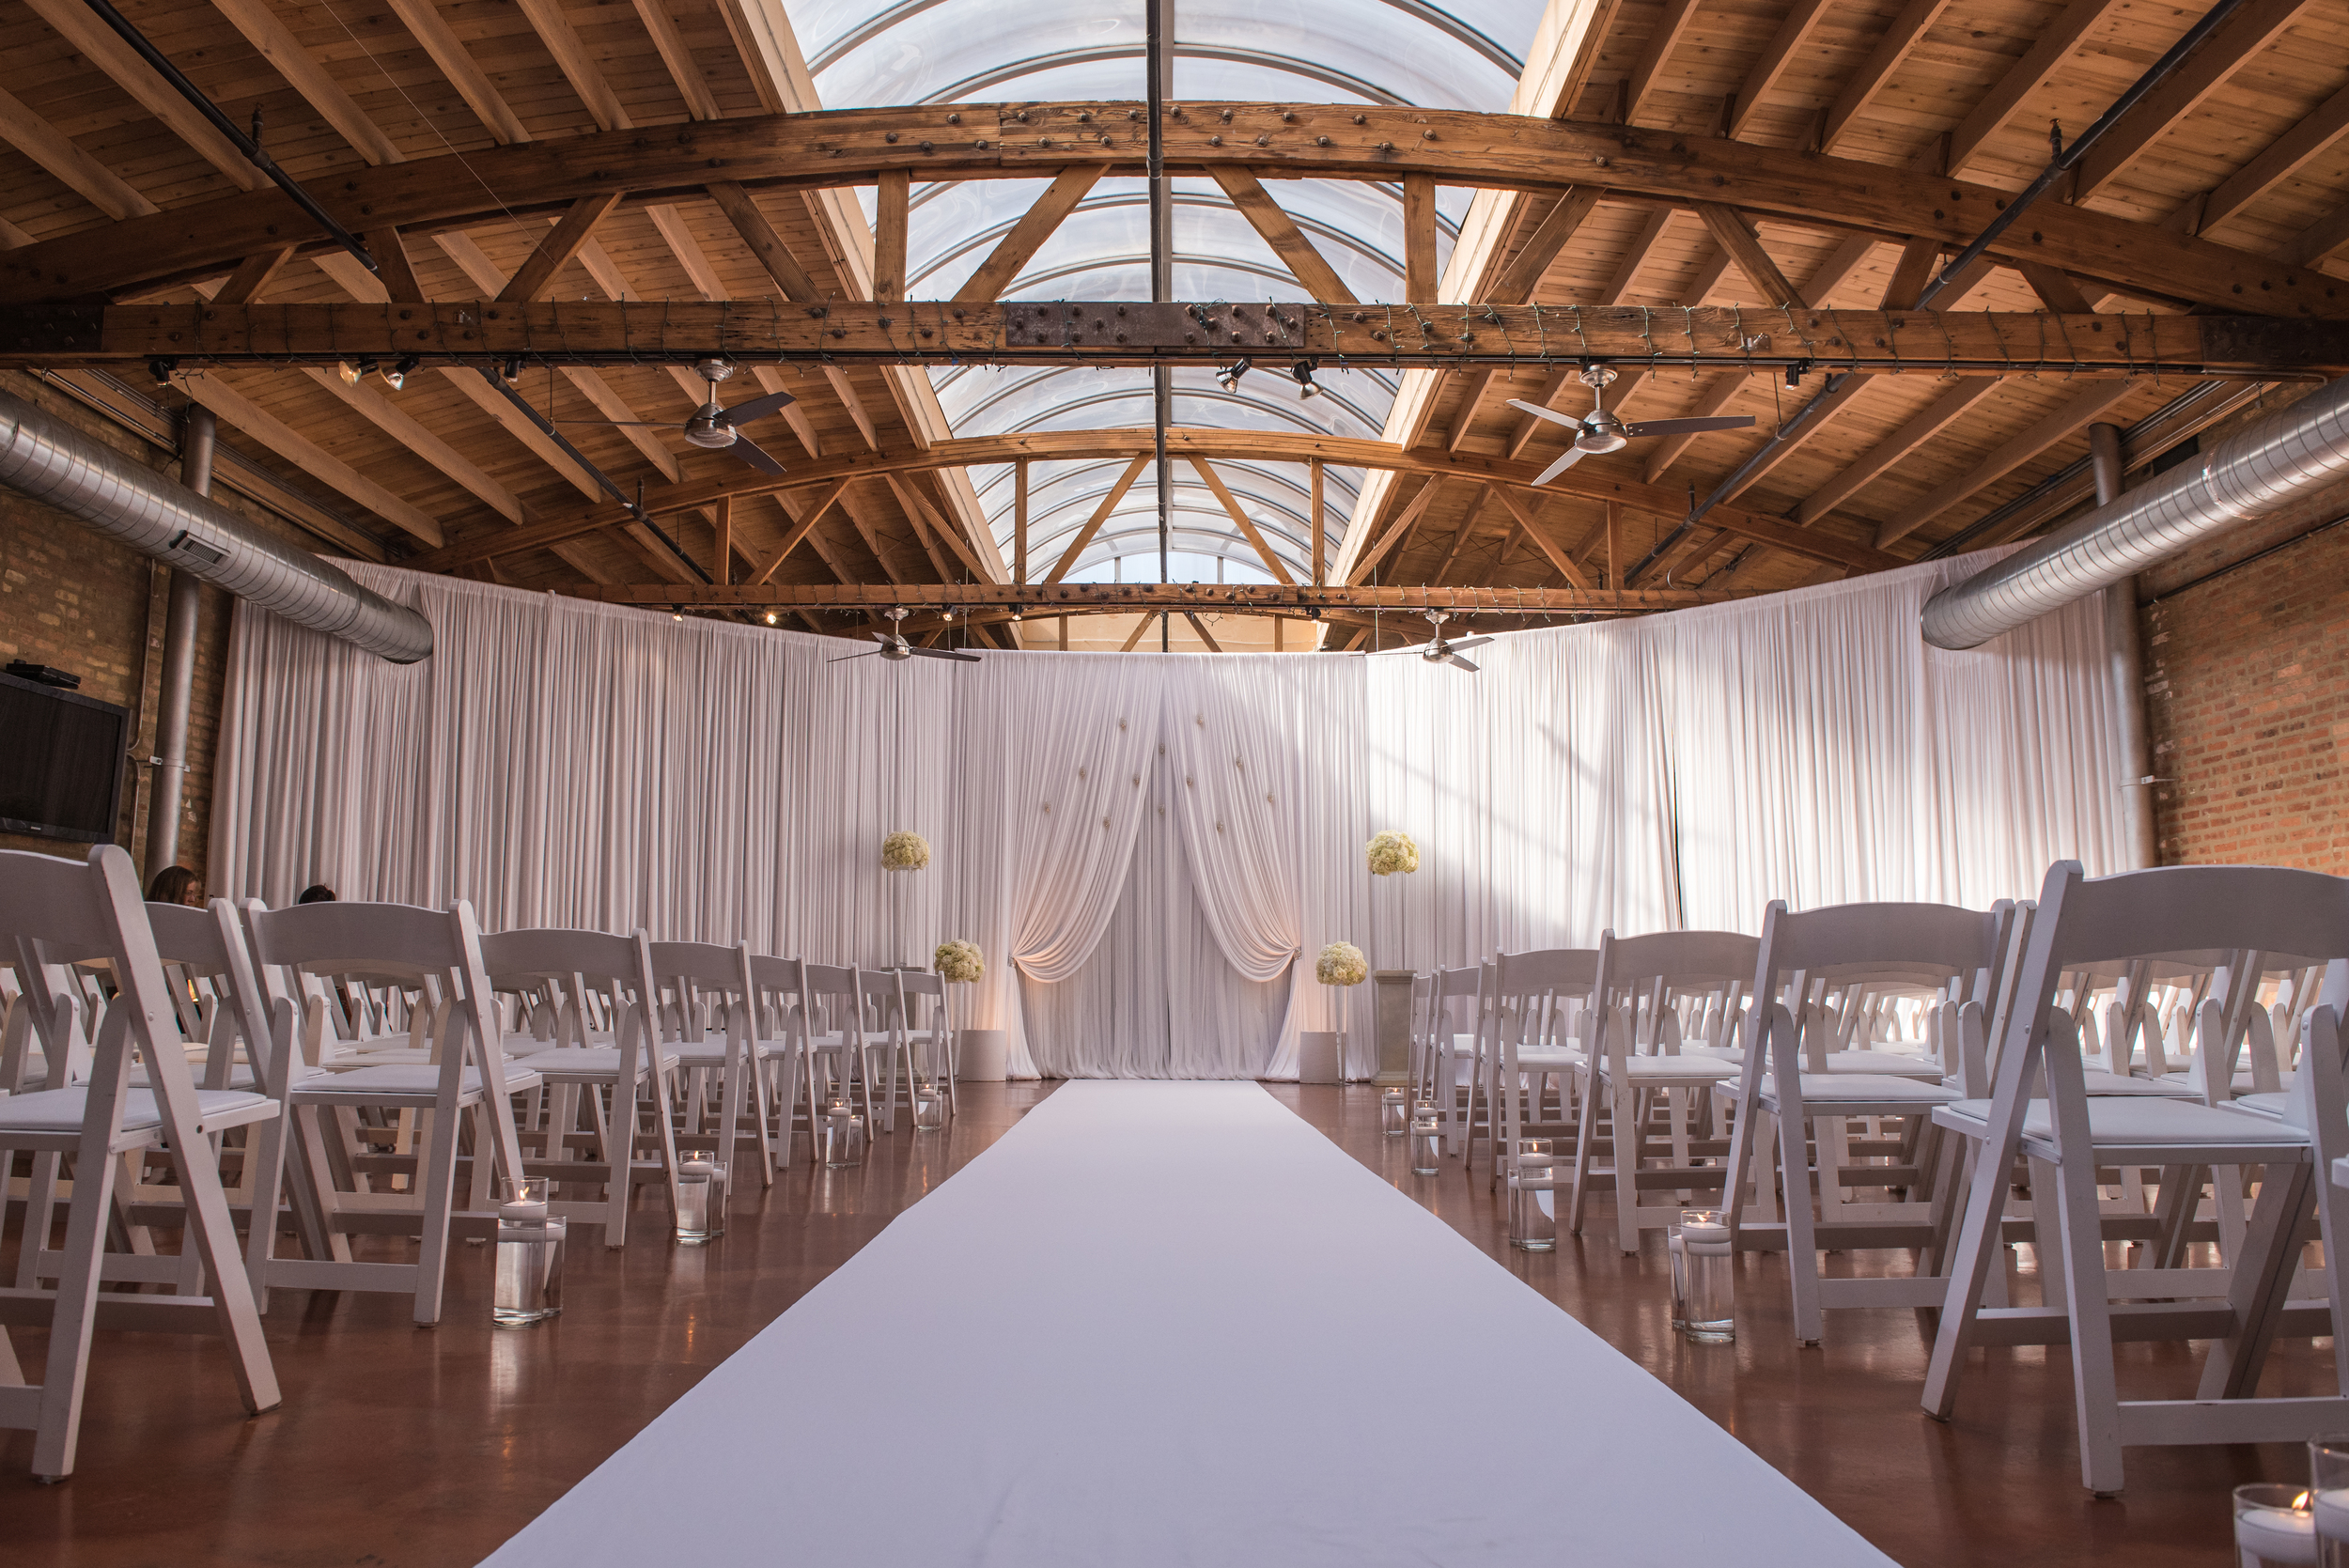 Venue:  Loft on Lake    Photography:  Thara Photo   Planning:  Elisa  , The Simply Elegant Group  Draping:  Art of Imagination    Floral:   Gratitude Heart Garden    Catering:  FireFly    Cake:  West Town Bakery   Bar:  Binny's   Reception:  Toast &Jam  Transportation:  Windy City Limo